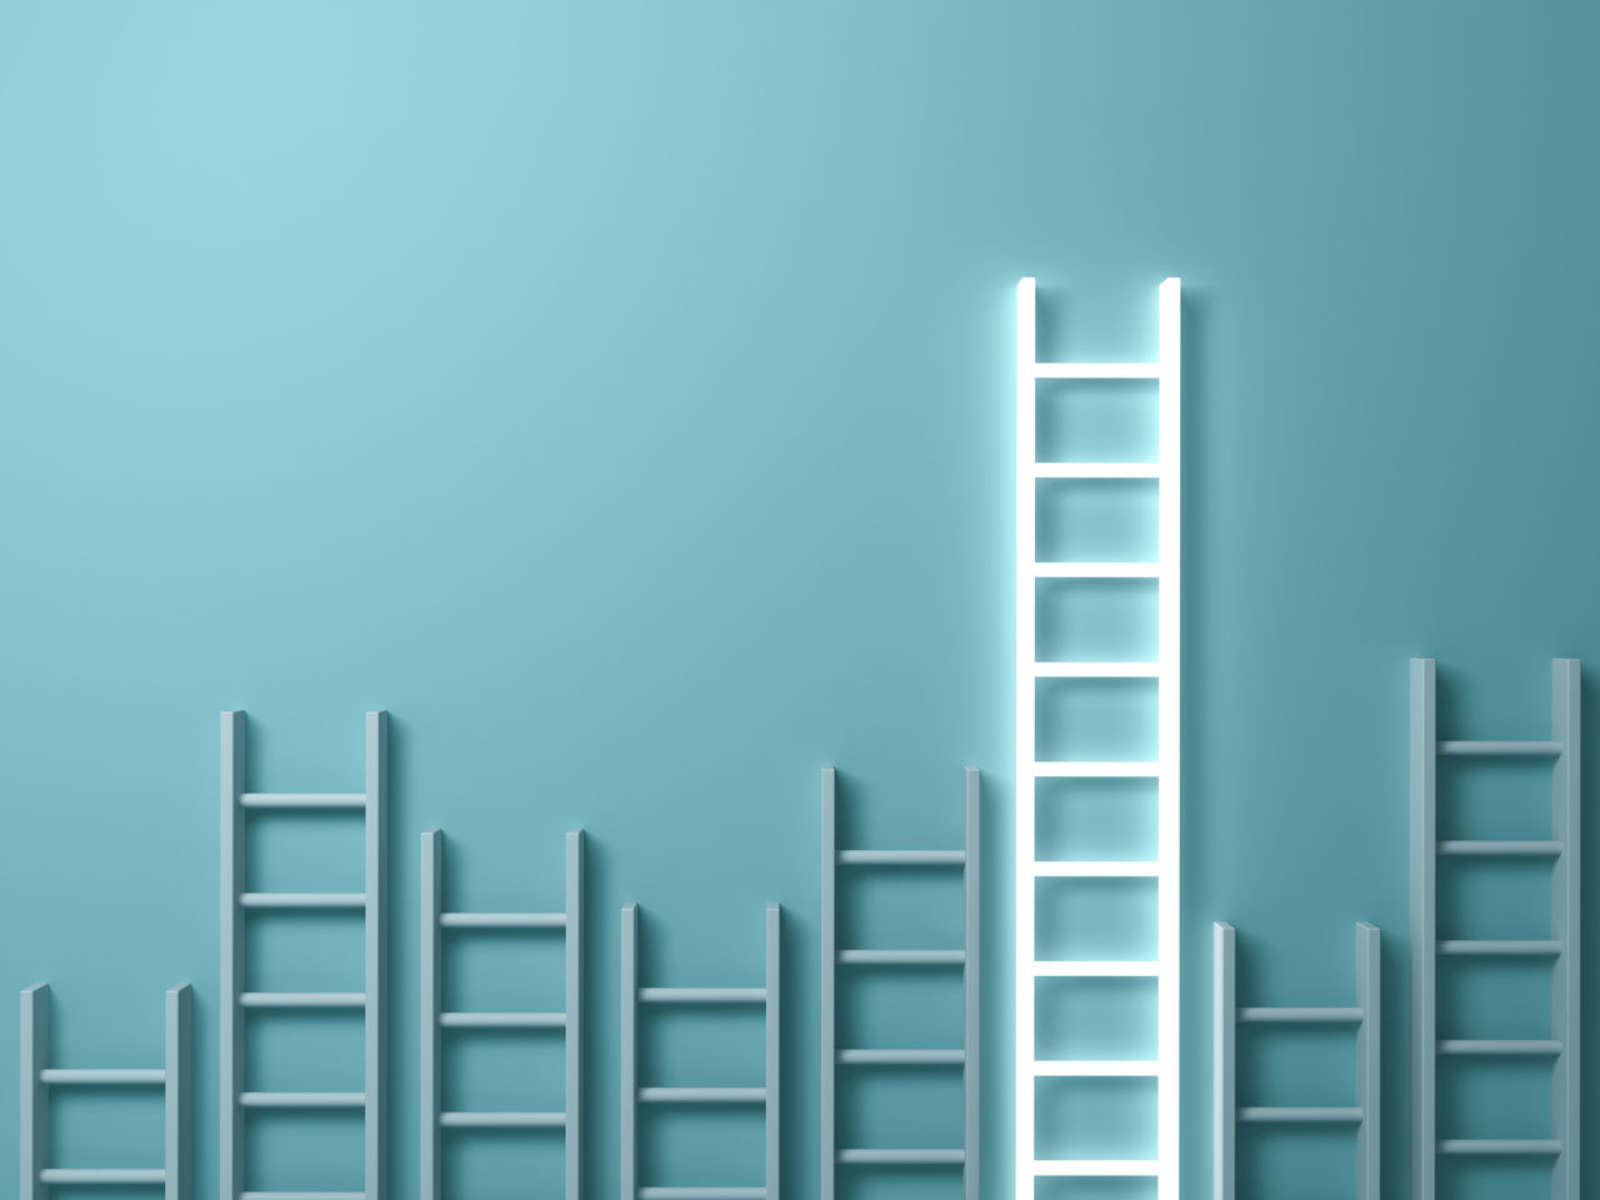 Seven gray ladders and one white ladder against a blue wall